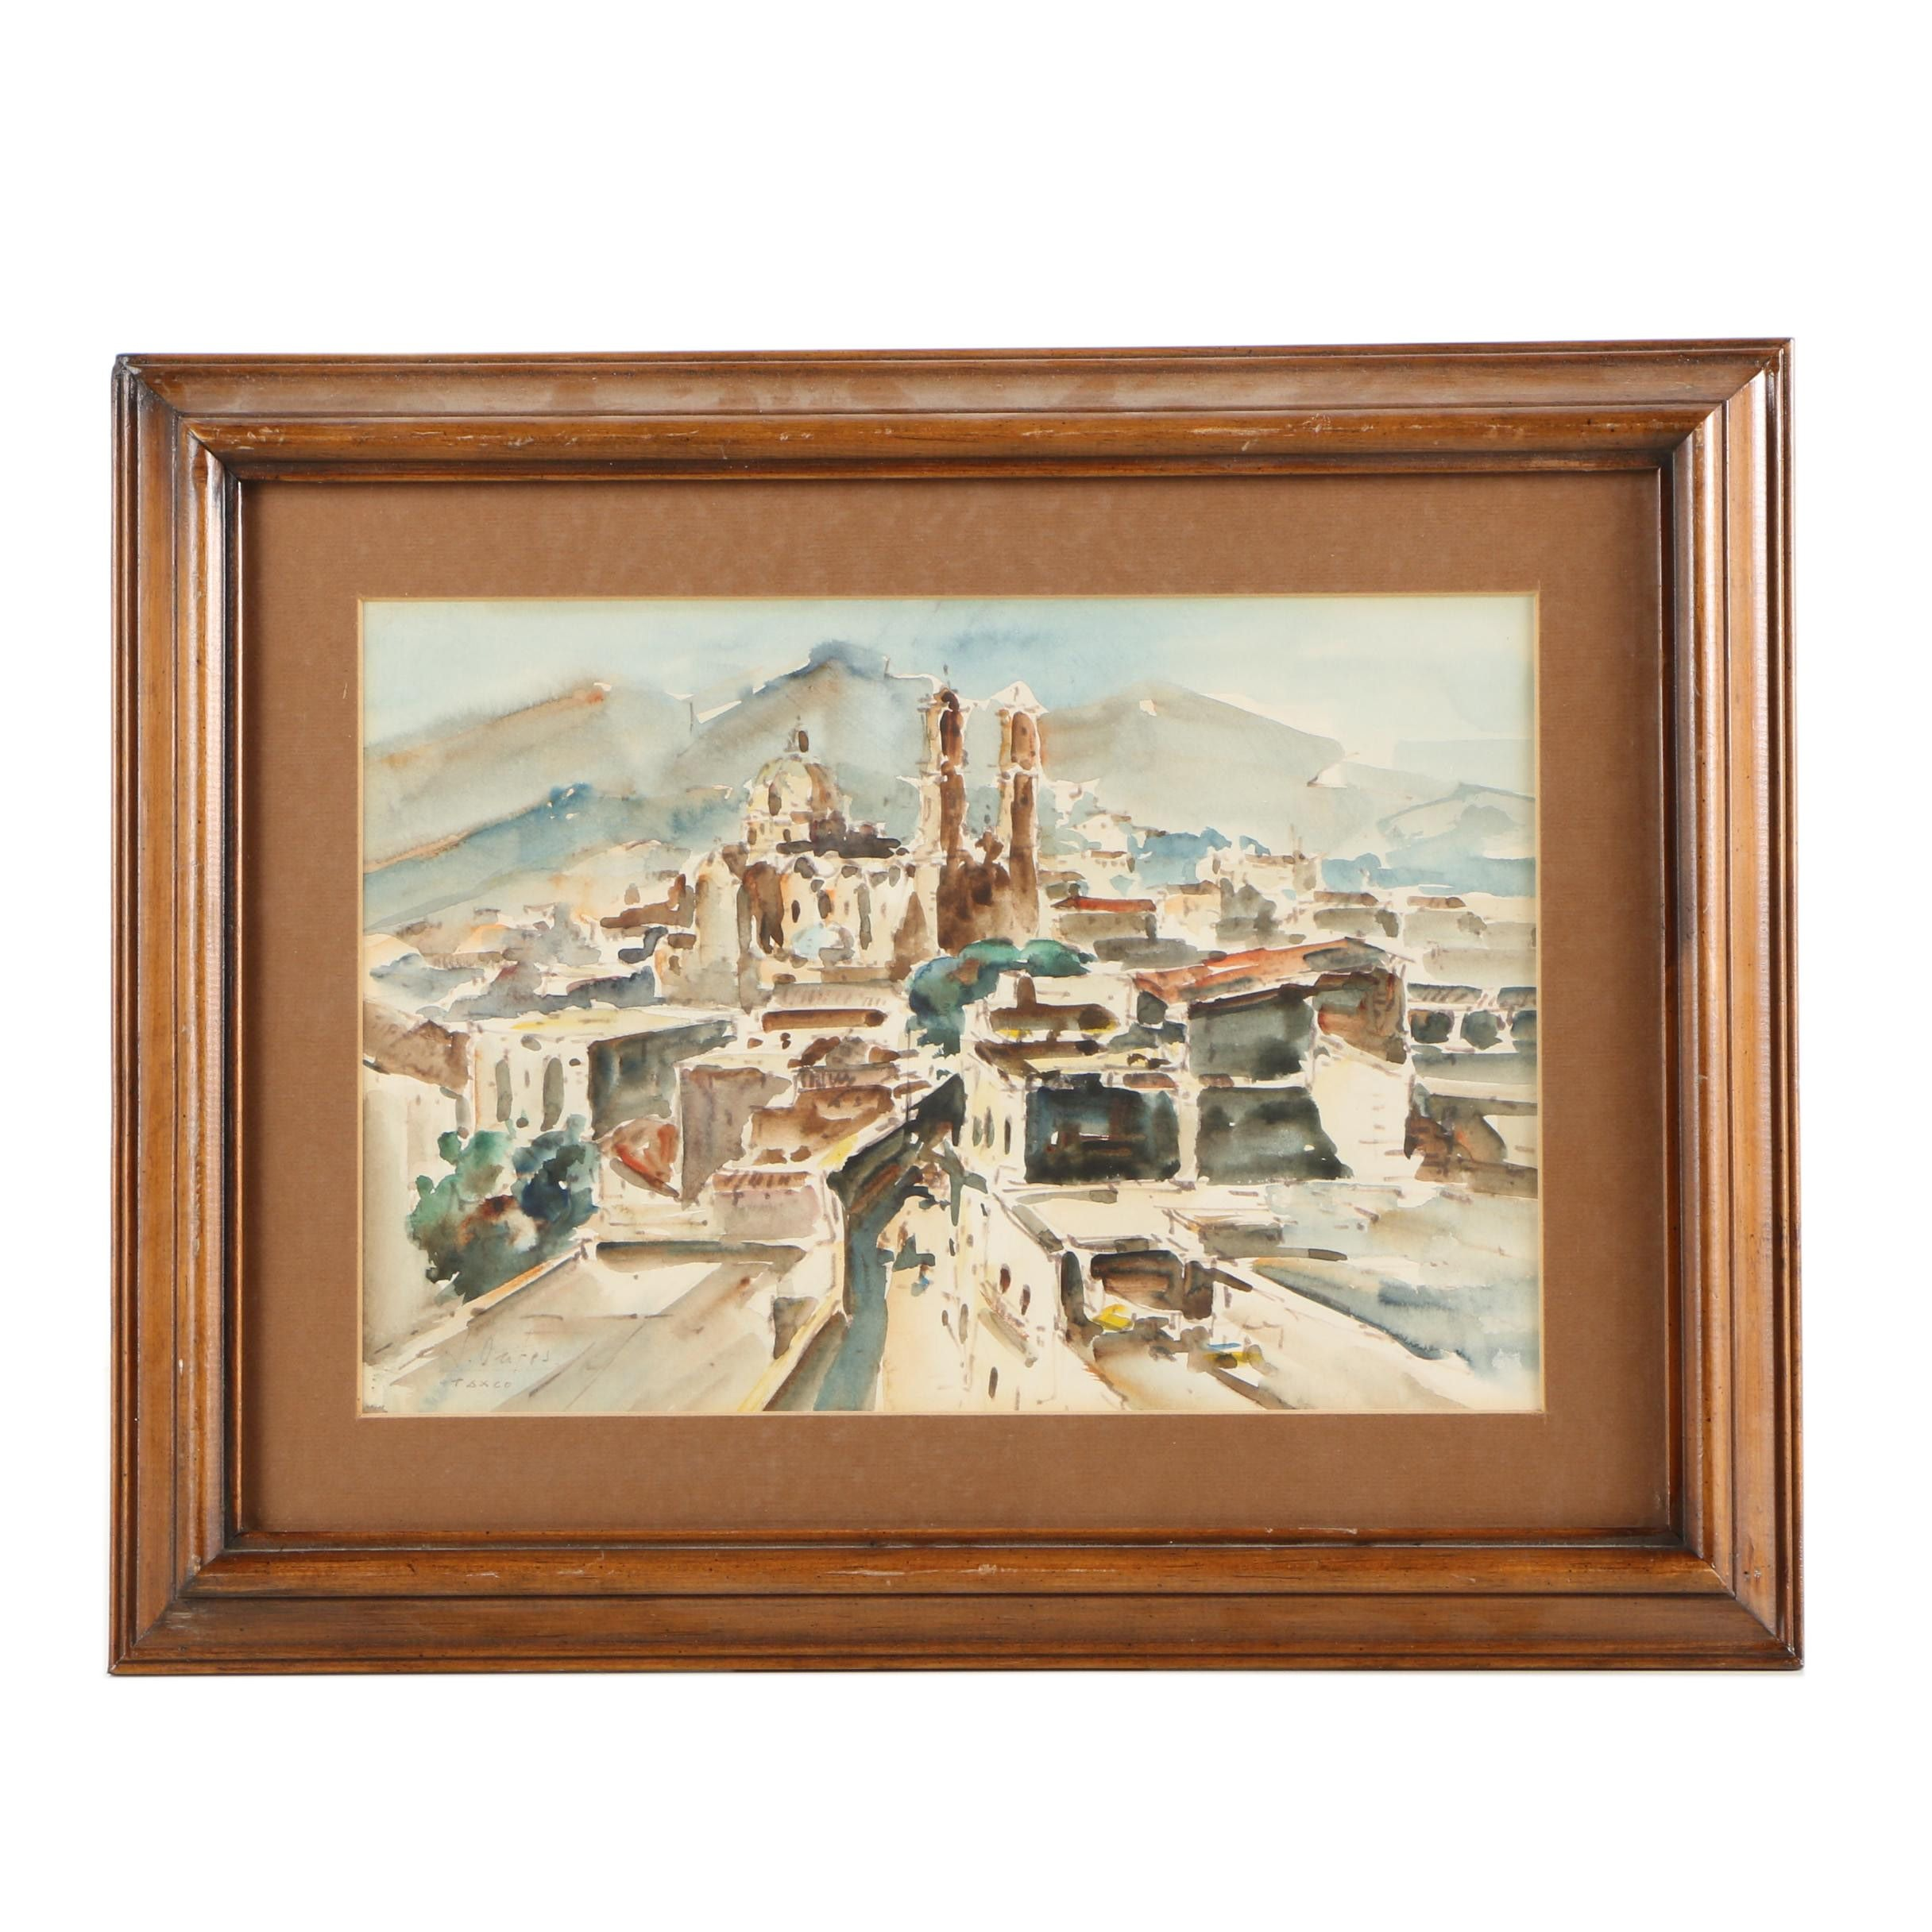 Jaime Oates Watercolor Painting of Taxco, Mexico